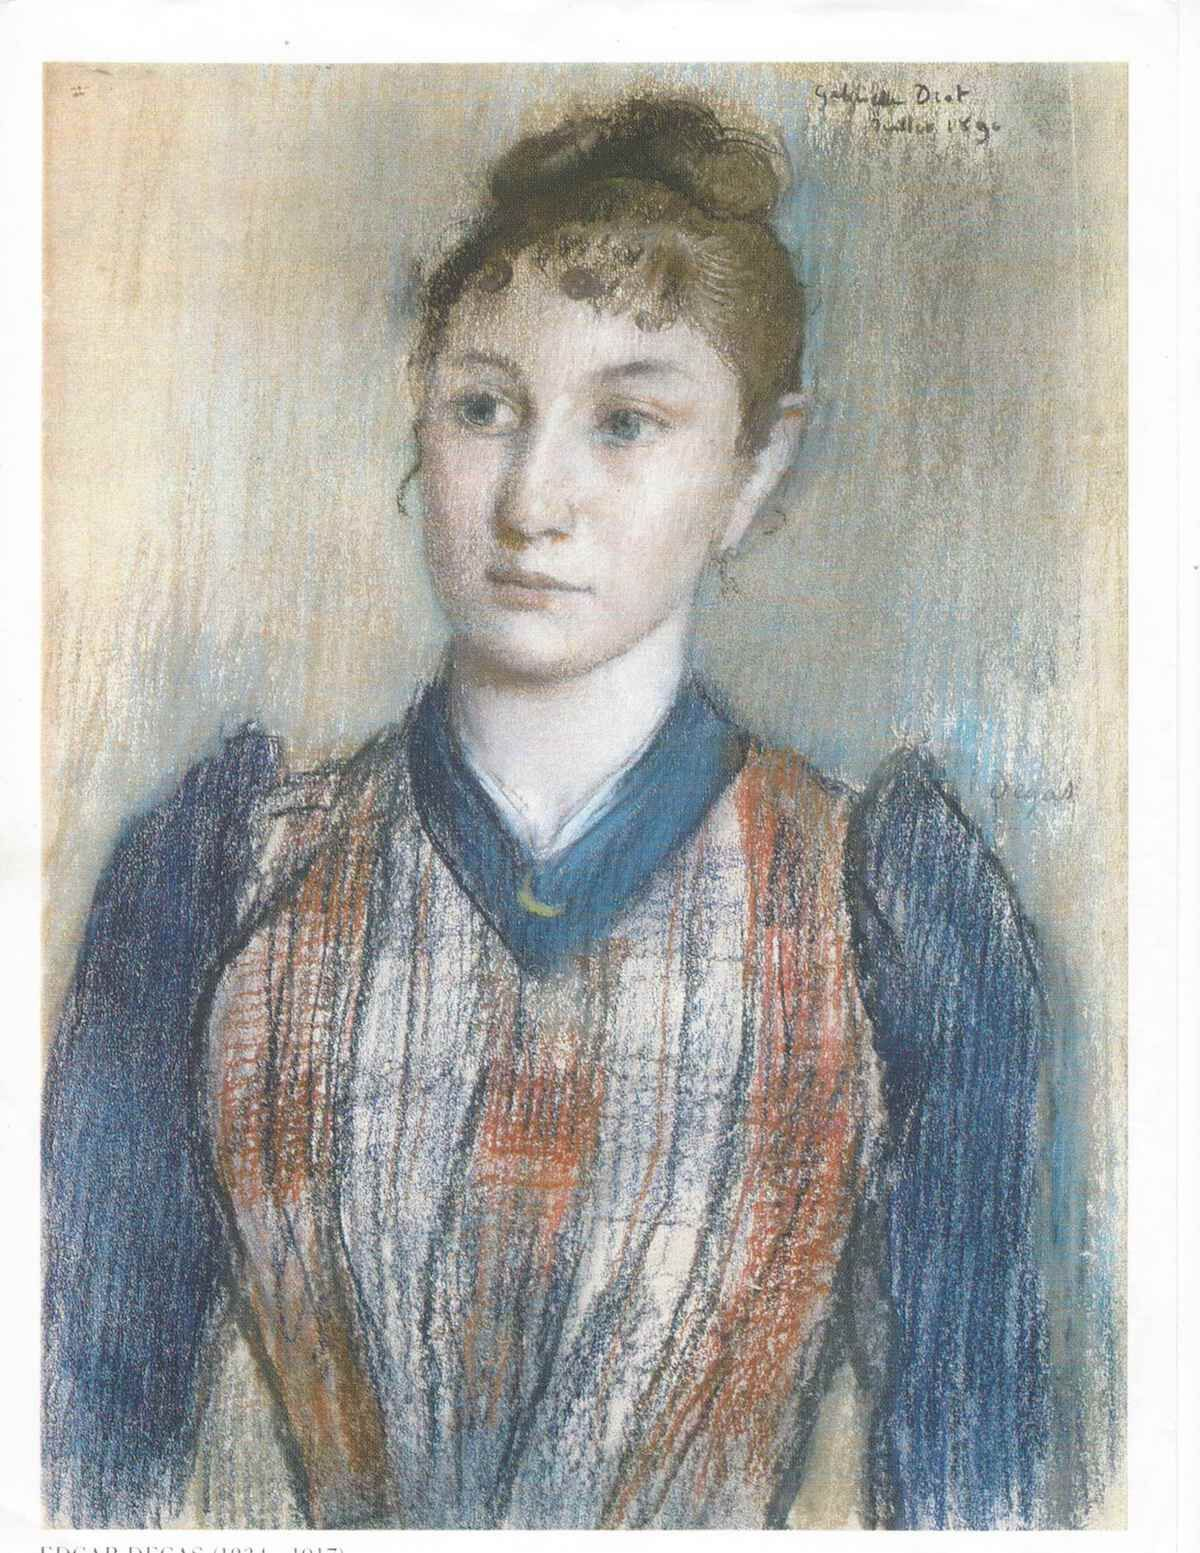 Edgar Degas, Portrait of Mlle. Gabrielle Diot, 1890. Photo courtesy Art Recovery International.